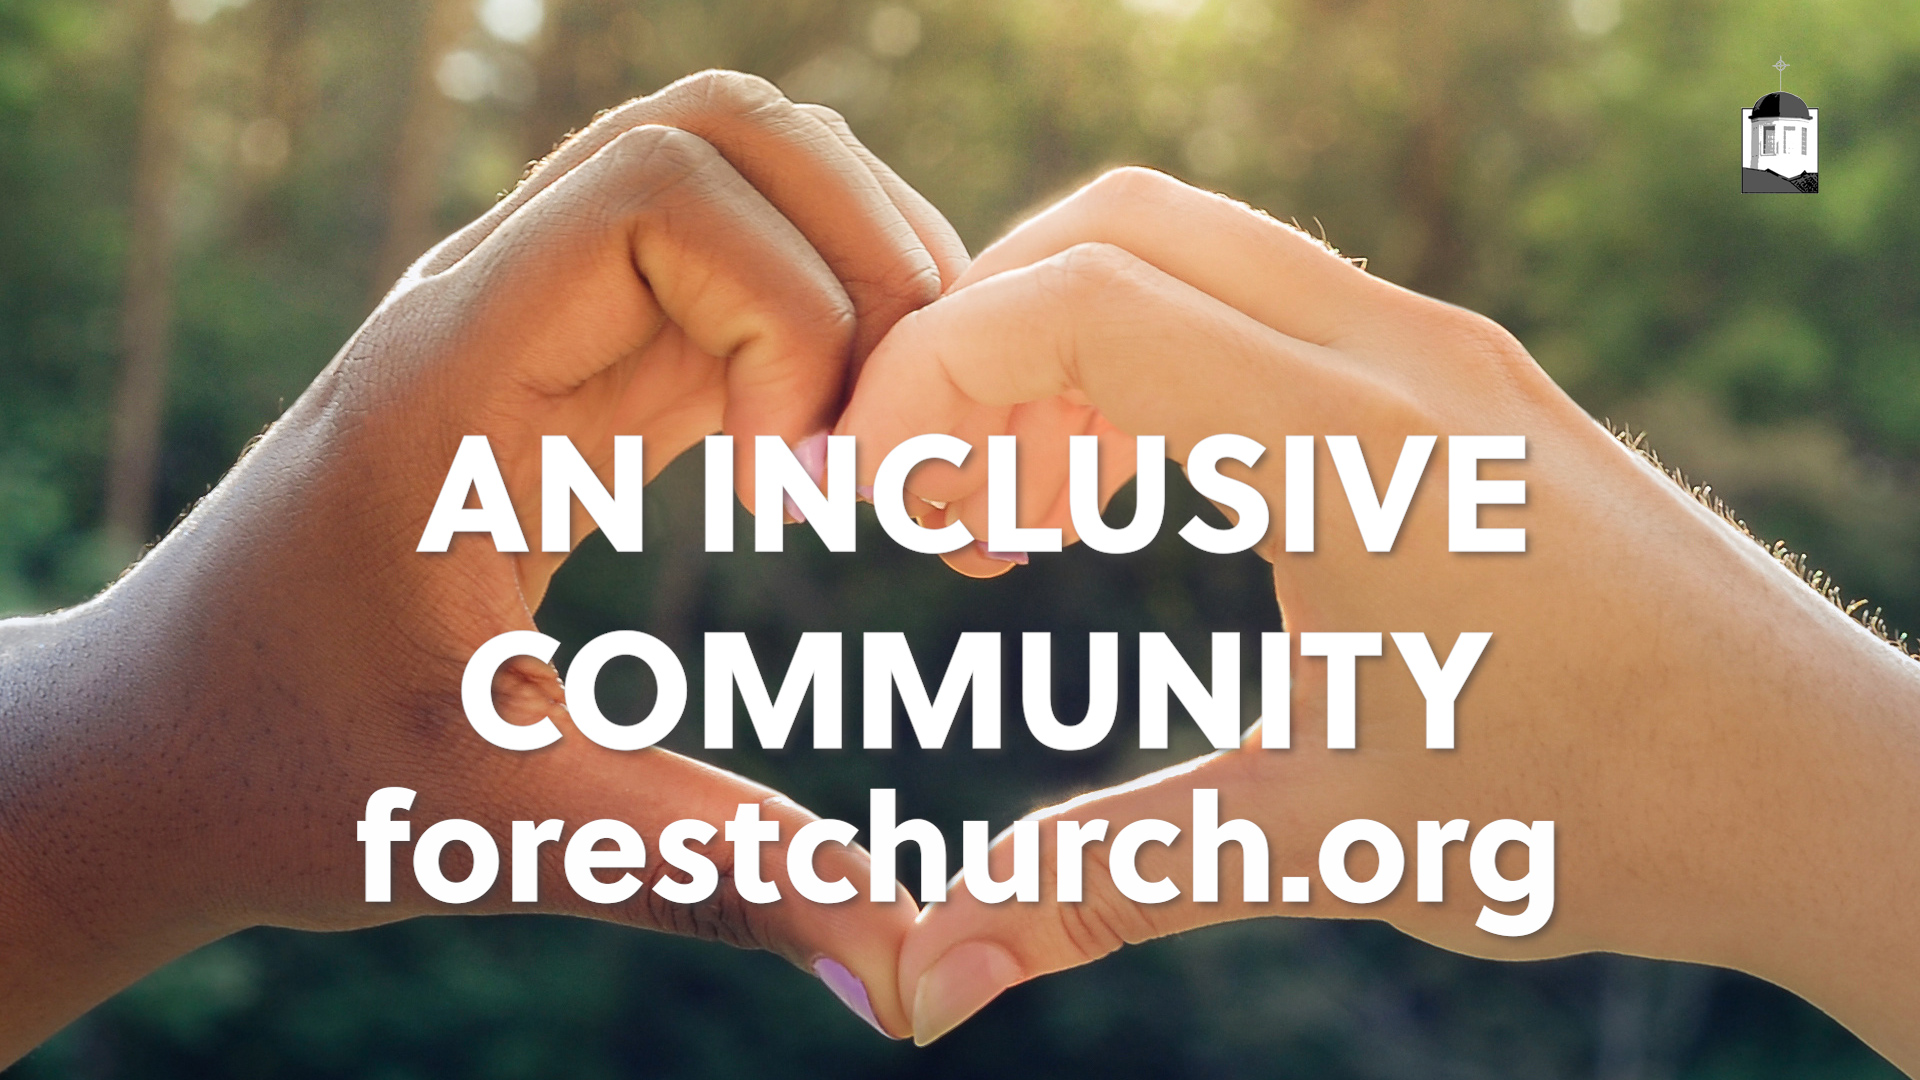 An Inclusive Community